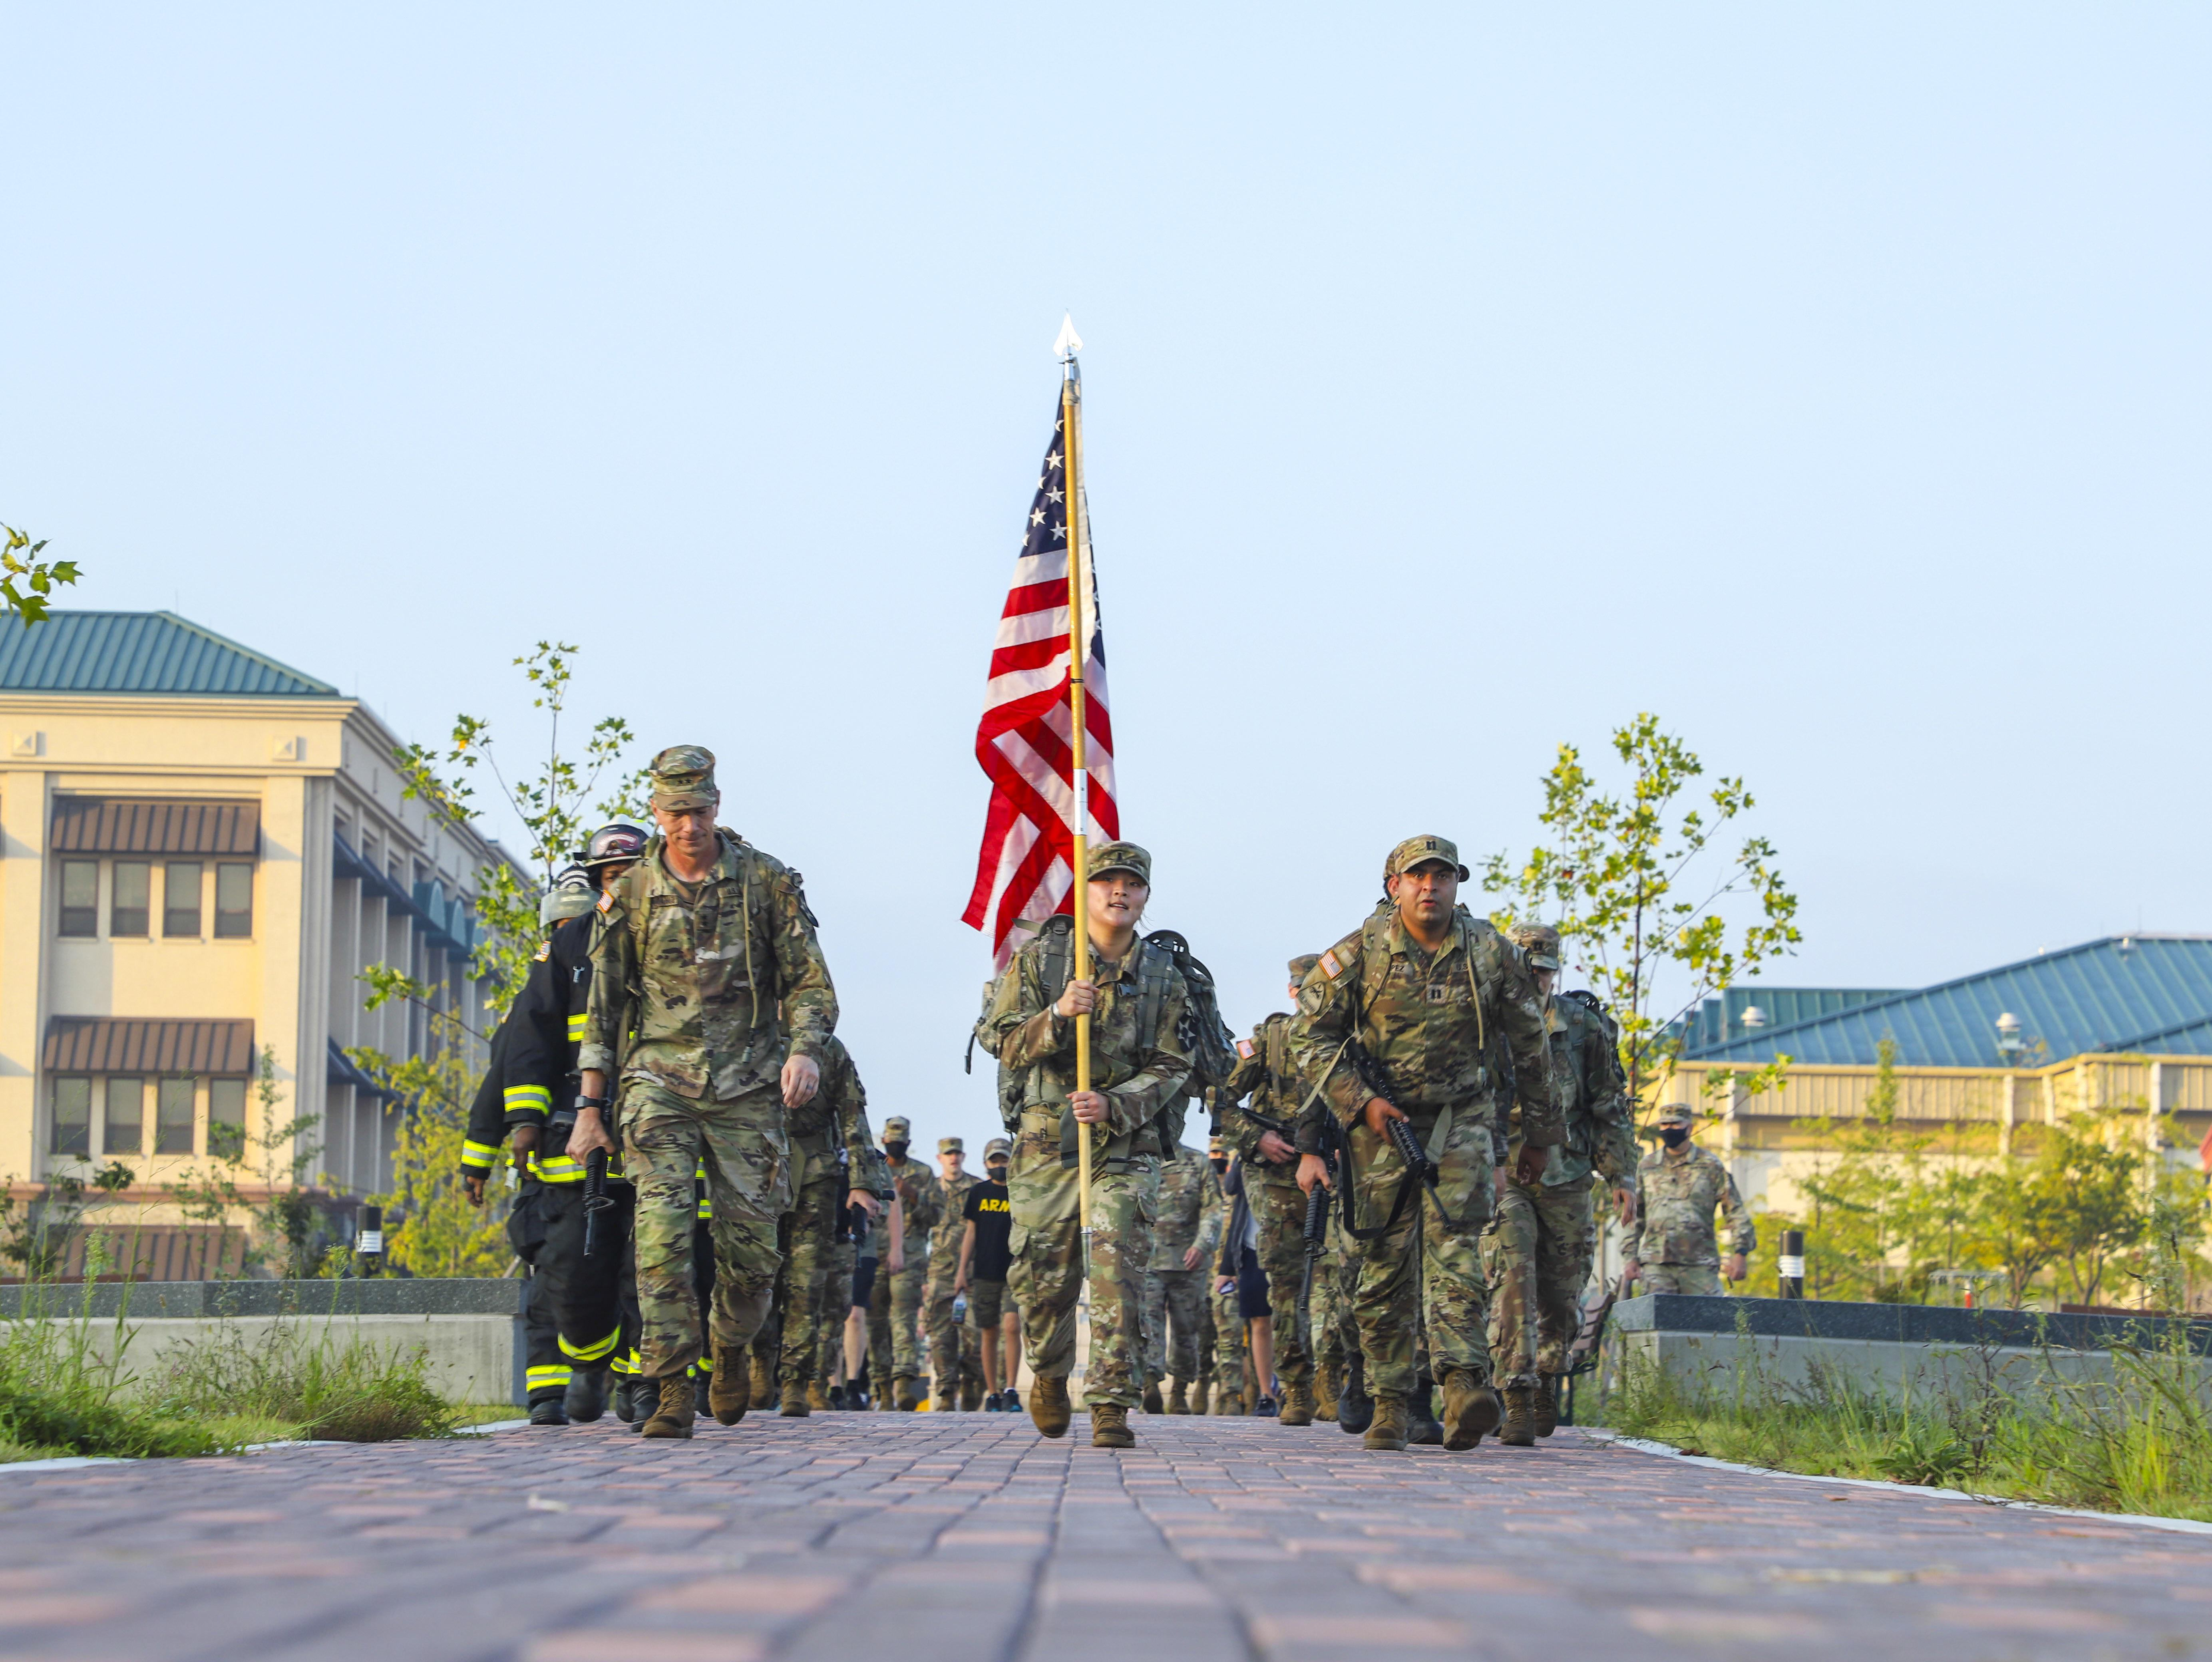 2nd Infantry Division and USAG Camp Humphreys final steps of the 48-hour 9/11 Ruck March